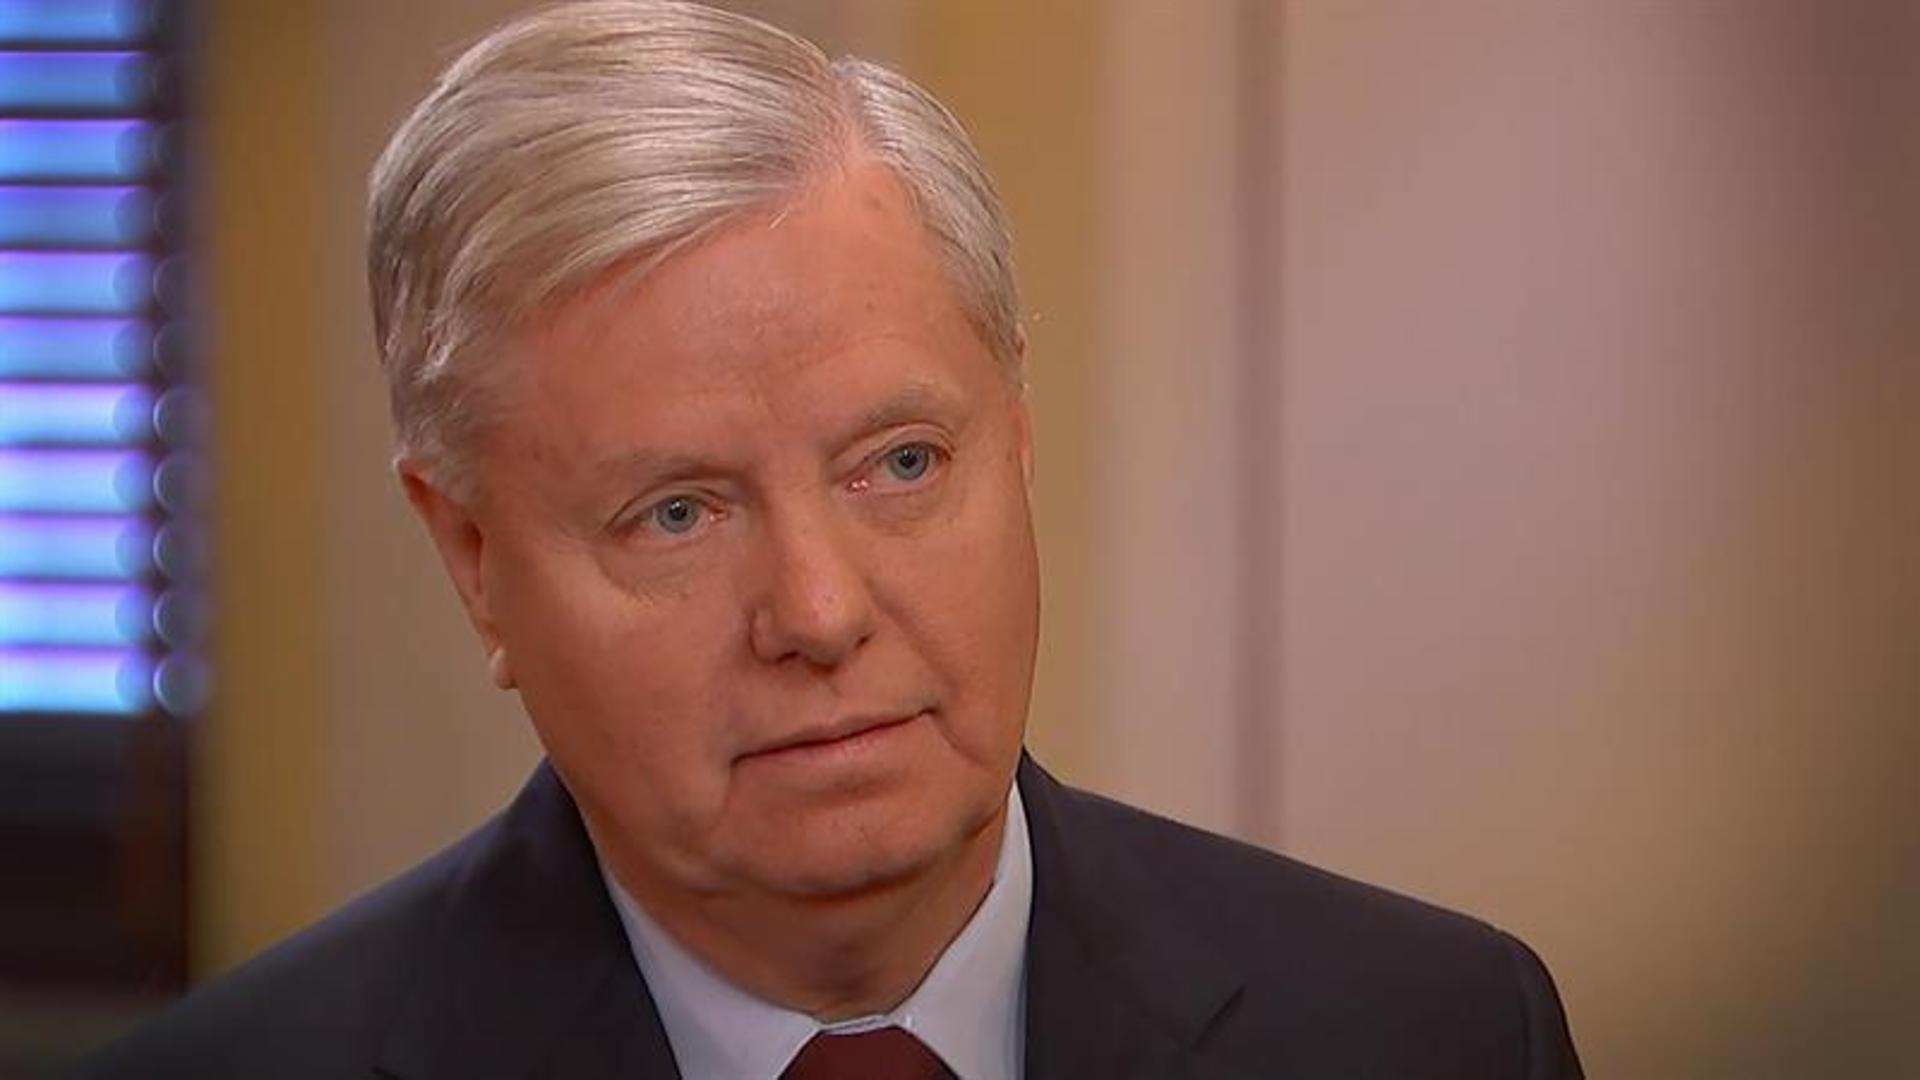 Lindsey Graham Chastises Republicans Happy About Hacking: 'You're Not A Patriot'